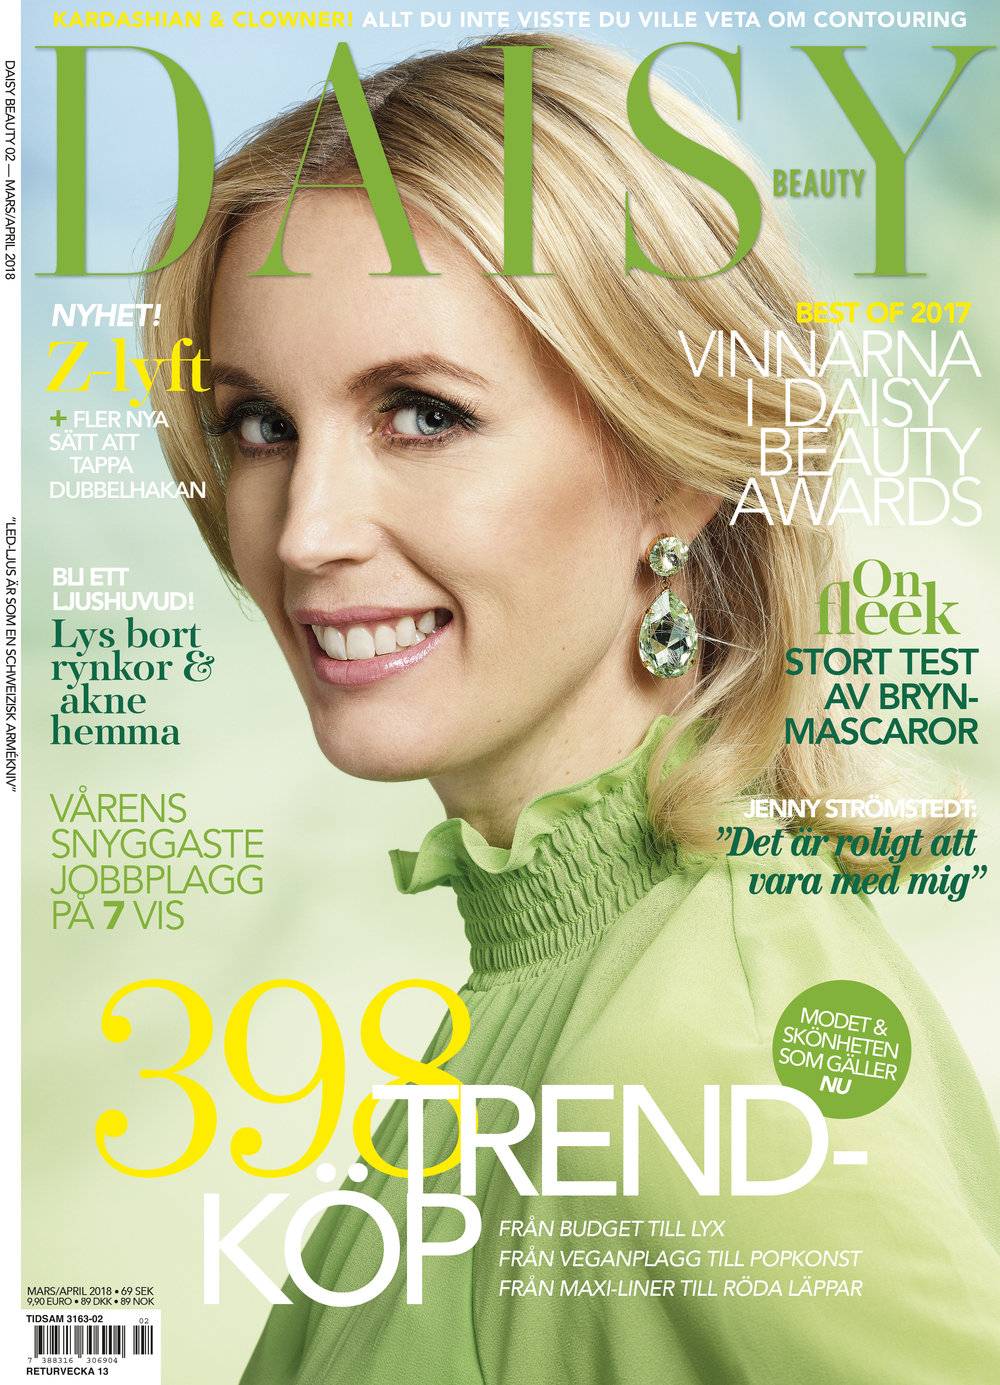 Jenny Strömstedt on the cover for the second issue of Daisy Beauty magazine 2018